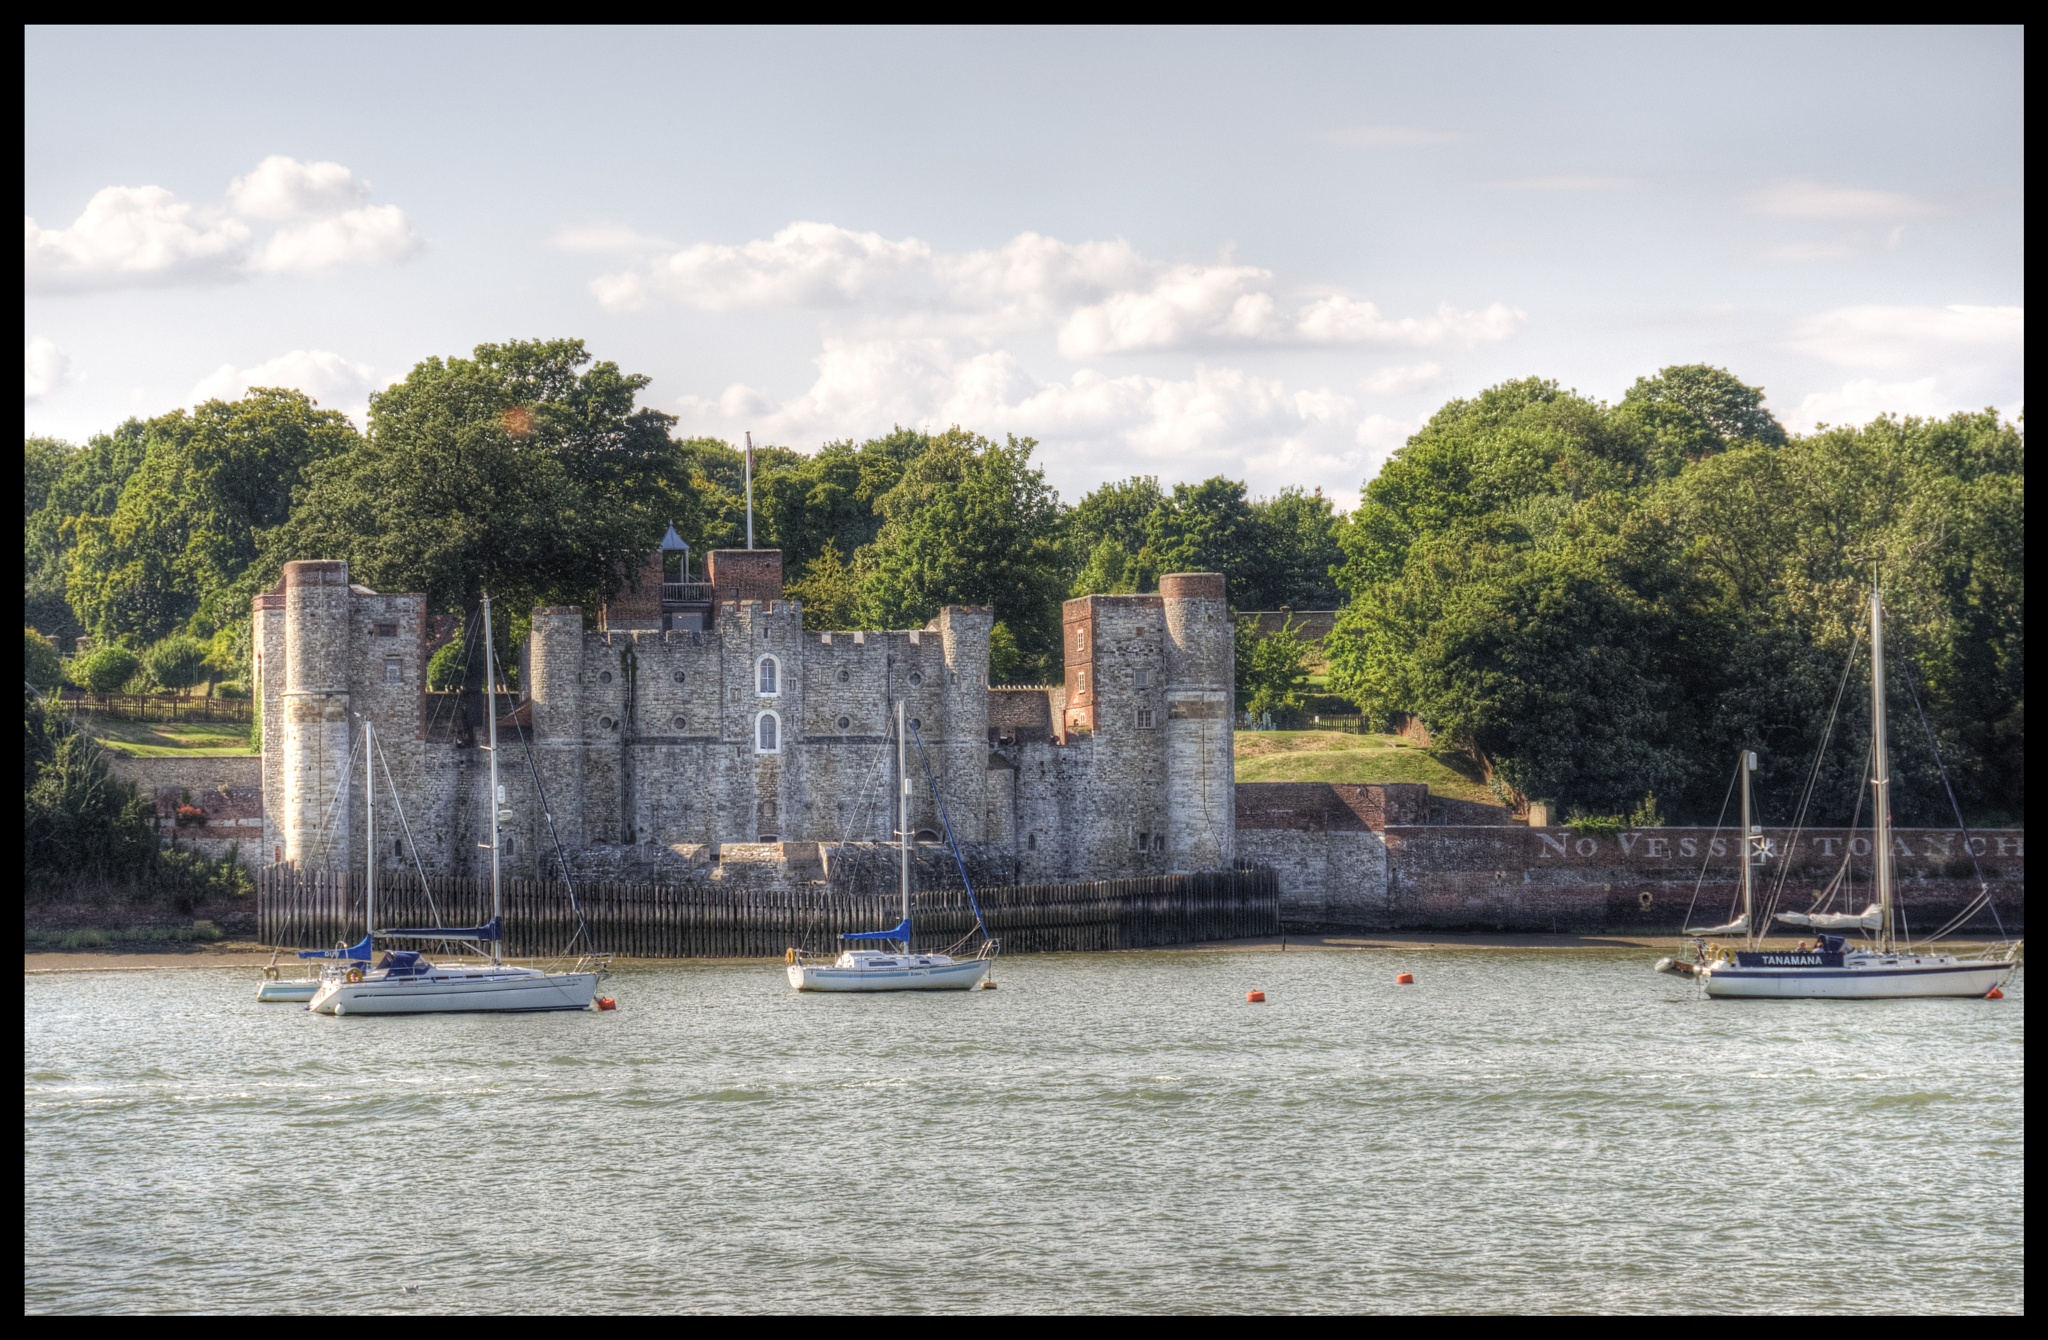 Upnor castle, Chatham UK. by patrickyolanda